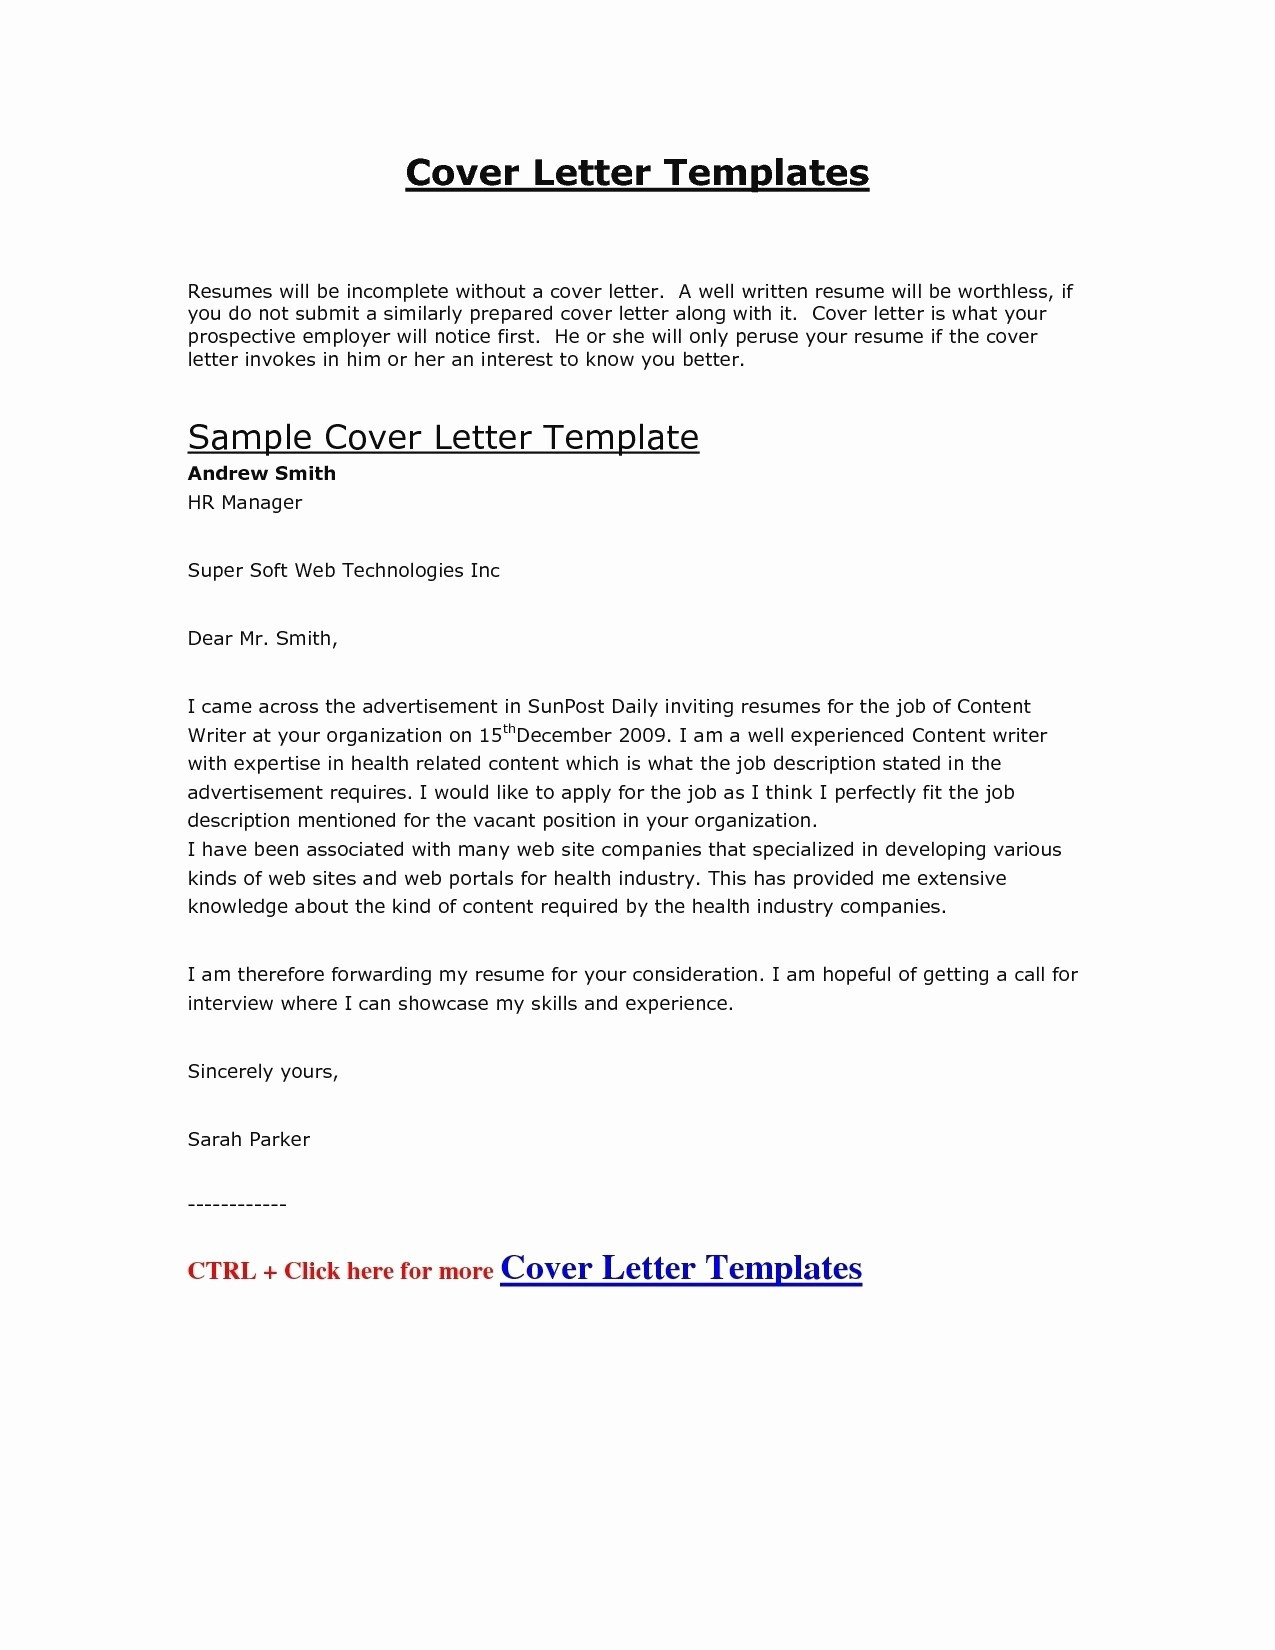 Resume Cover Page Template - Job Apply Cover Letter Bank Letter format formal Letter Template